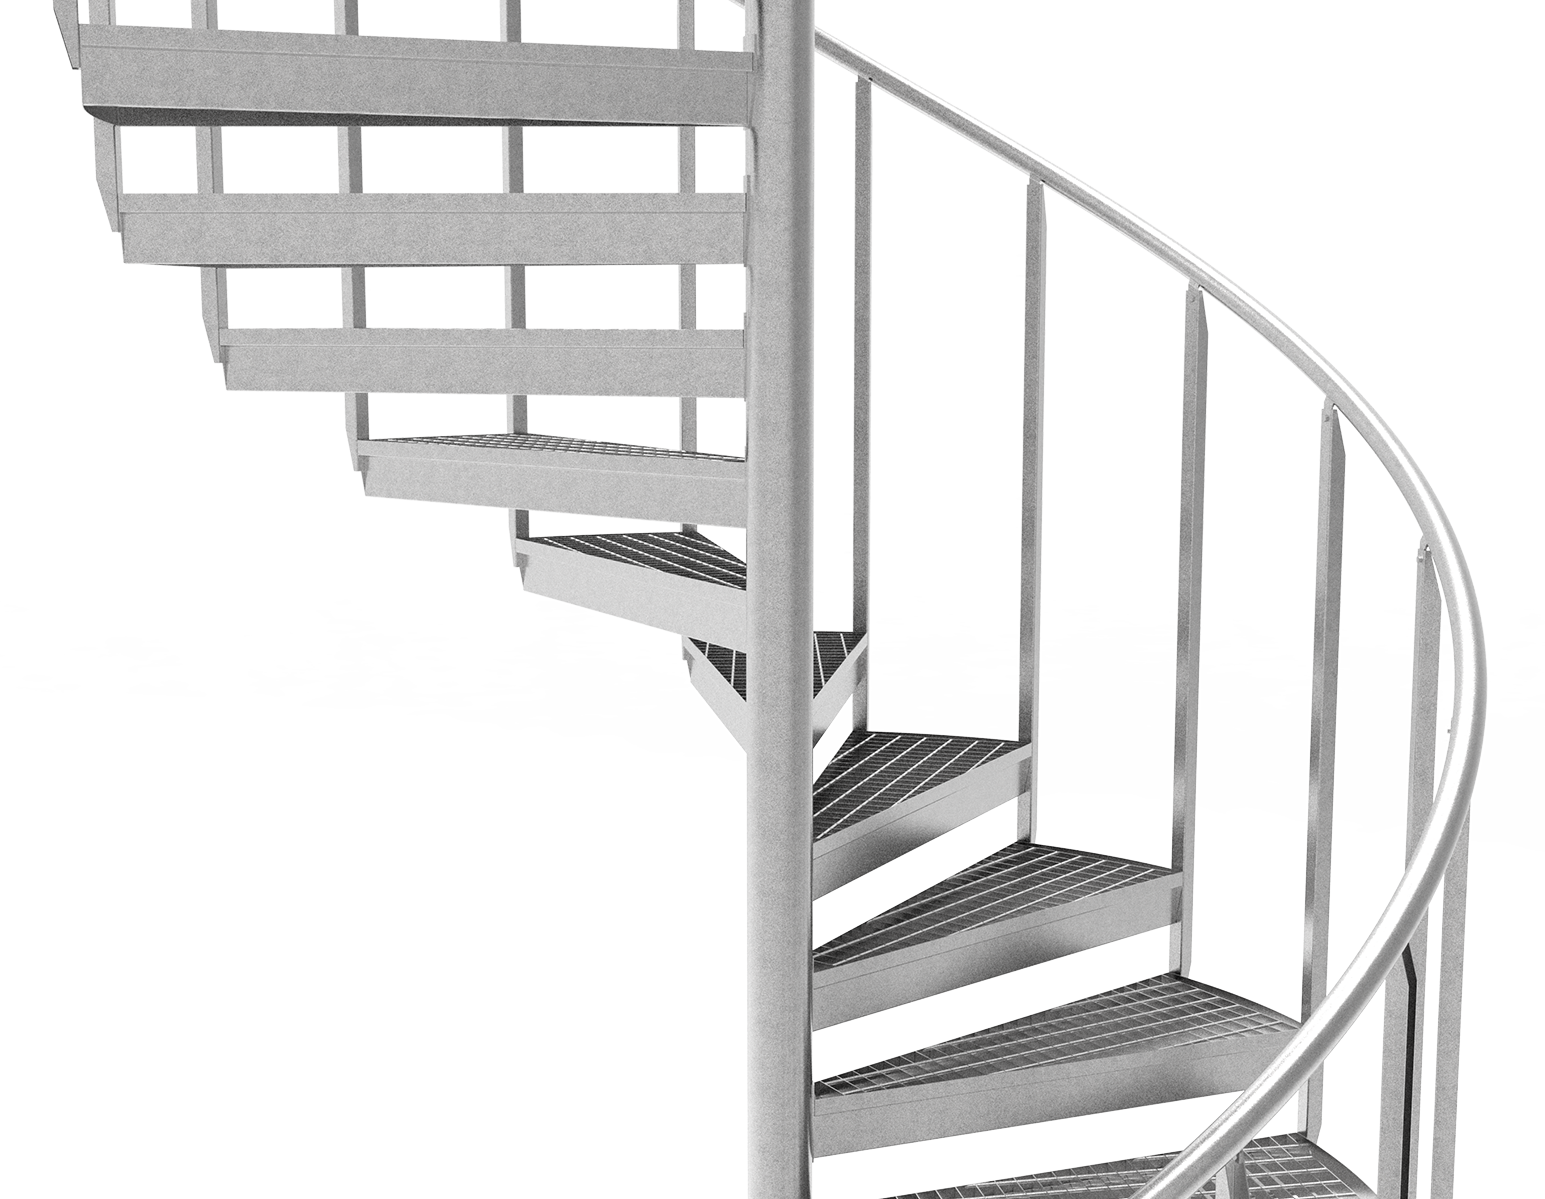 Spiral staircase industrial railing grating steps